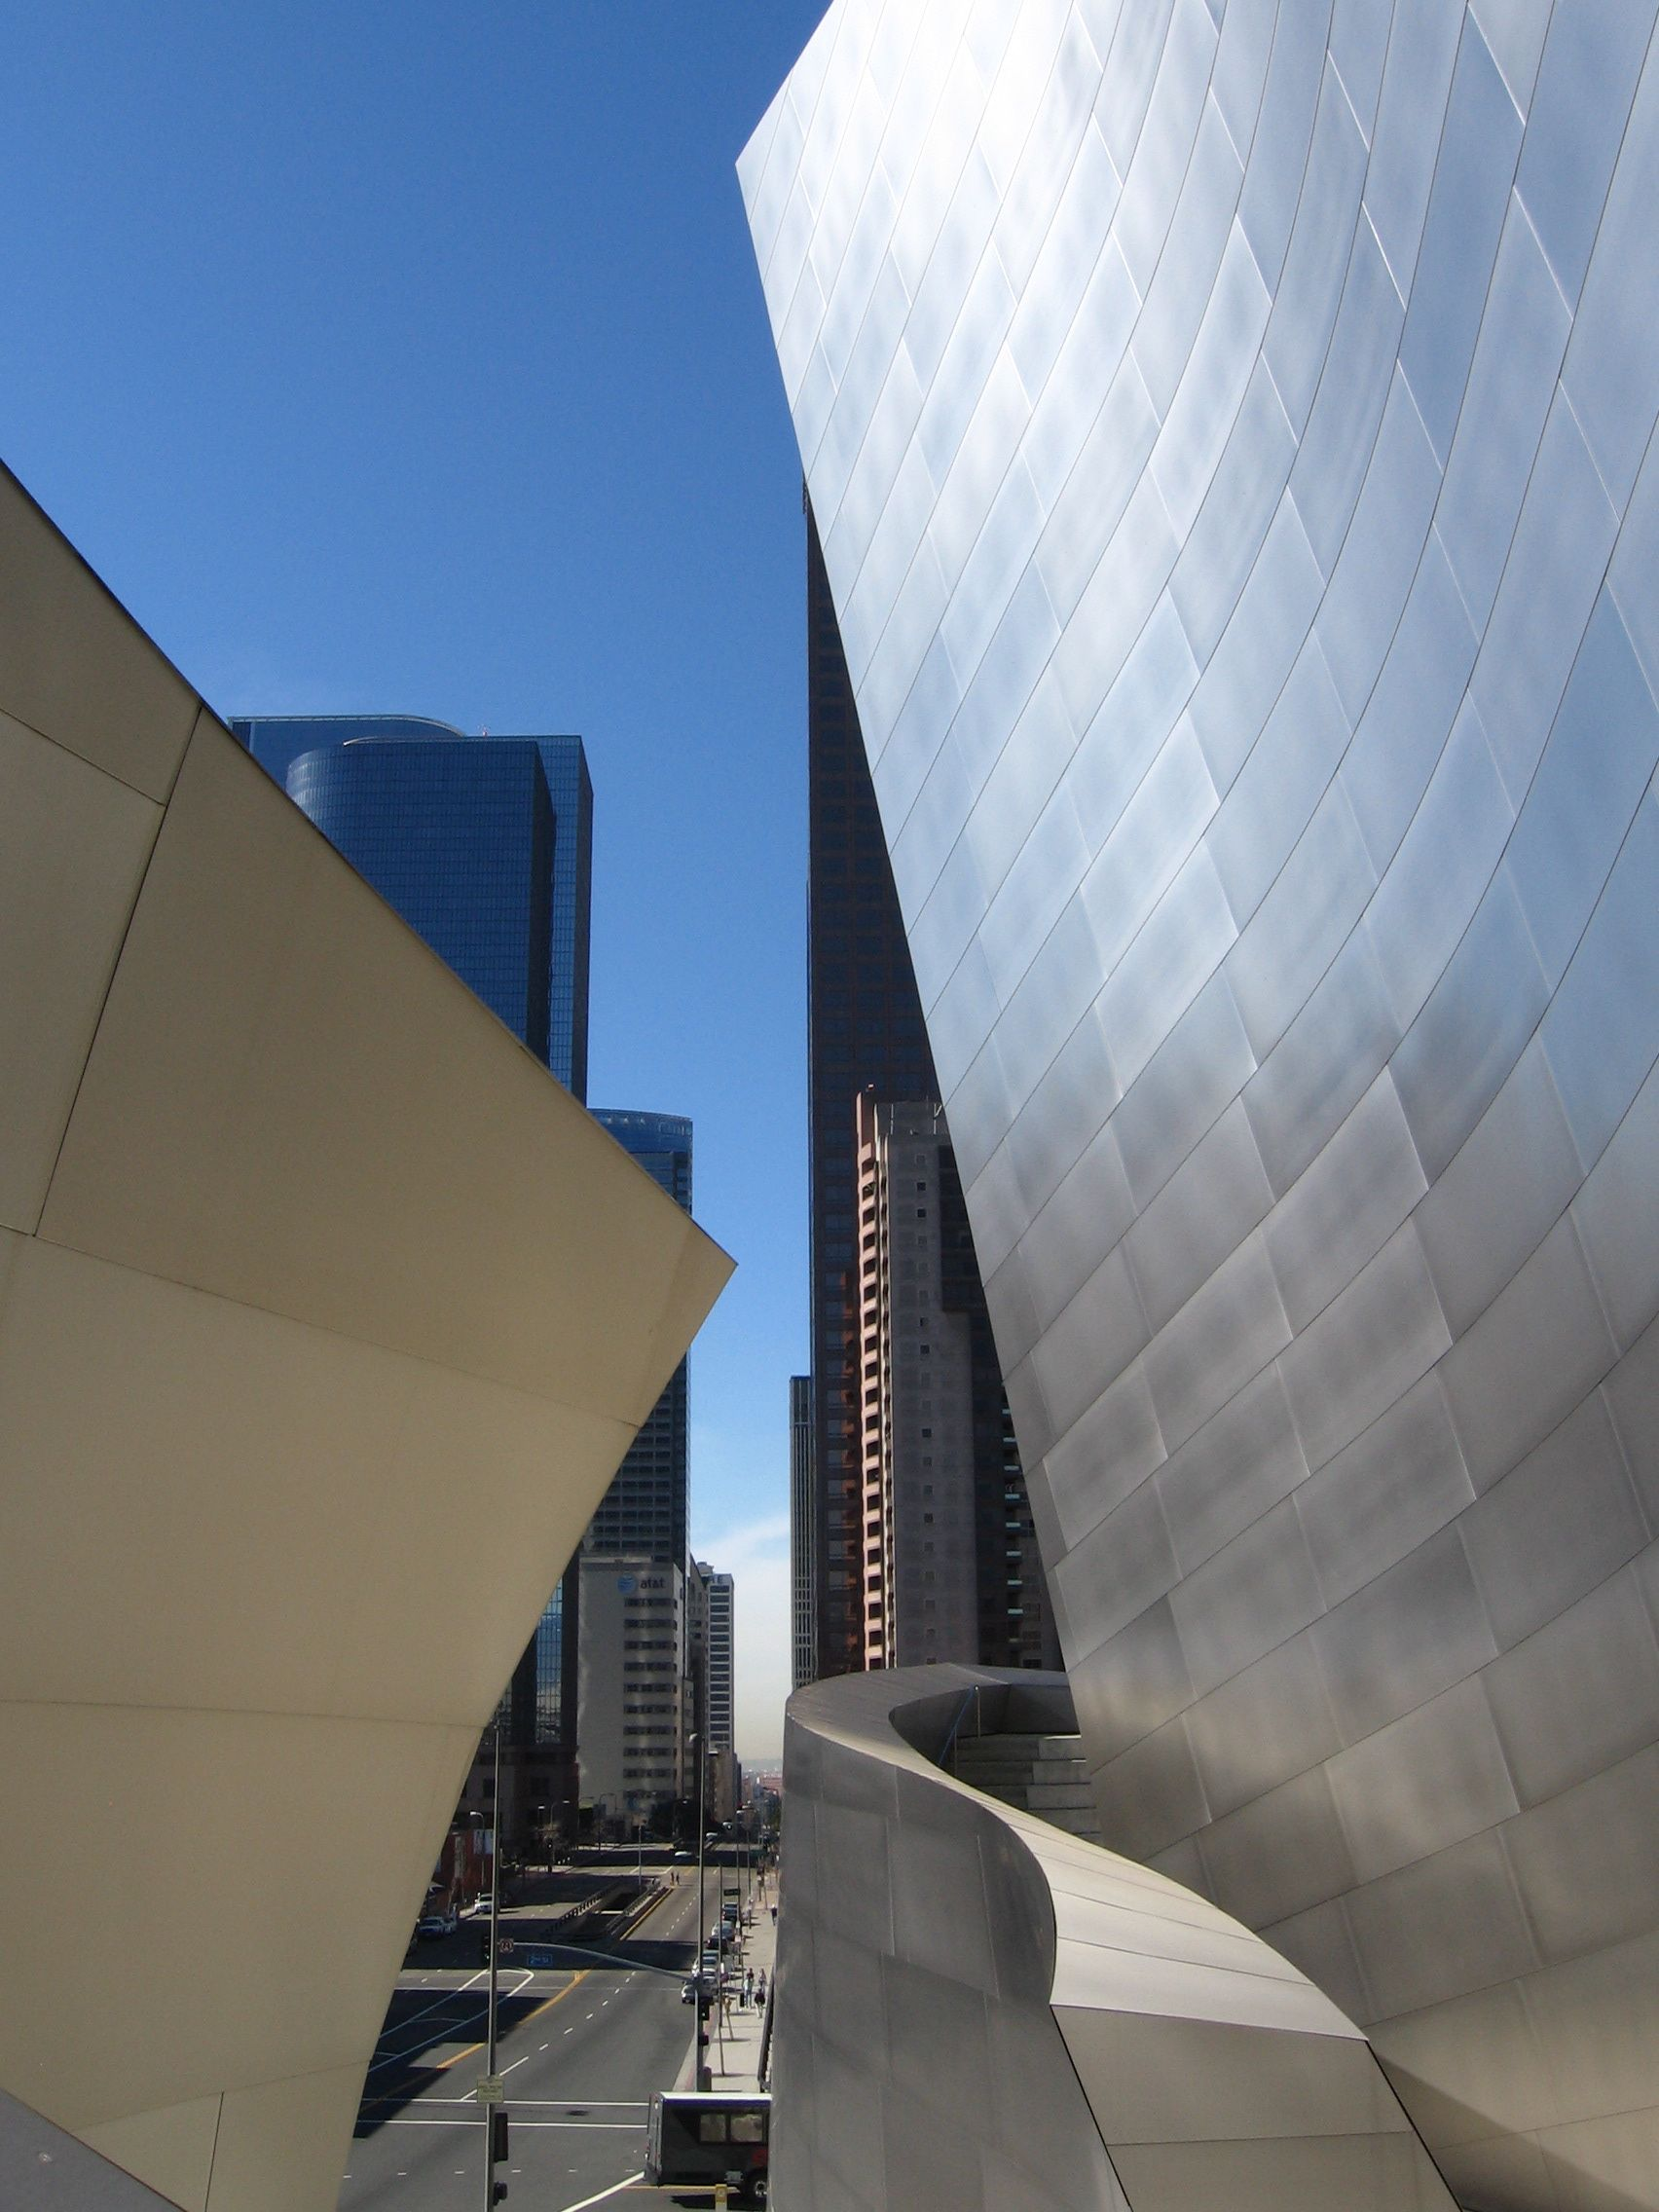 Walt Disney Music Hall By Gehry In Downtown Los Angeles As Featured Money Movies Magic More Scenic Us Car Drive Article On Journeylism Nl